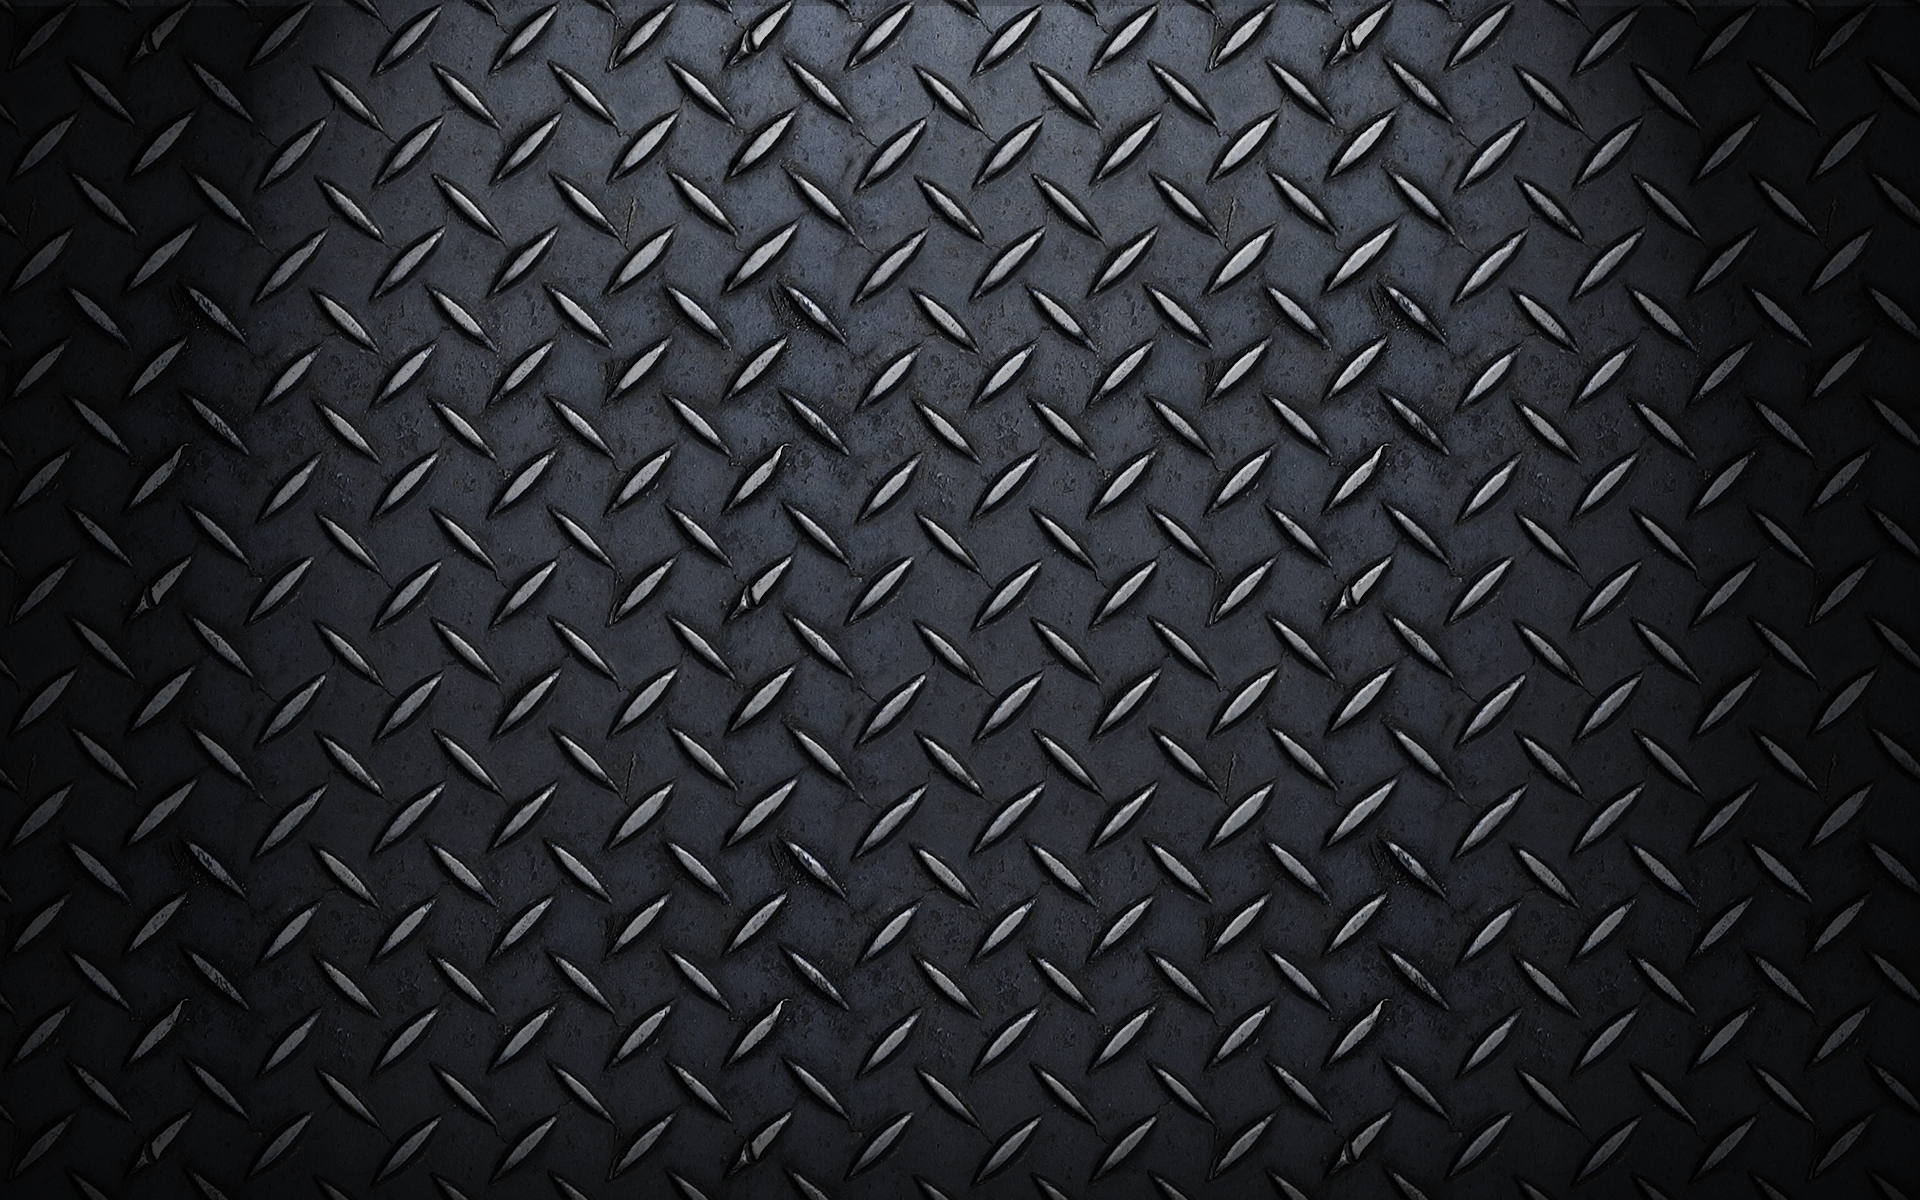 Graphics Bg Textured Hd Wallpapers Designs For Mobile Desktop Download